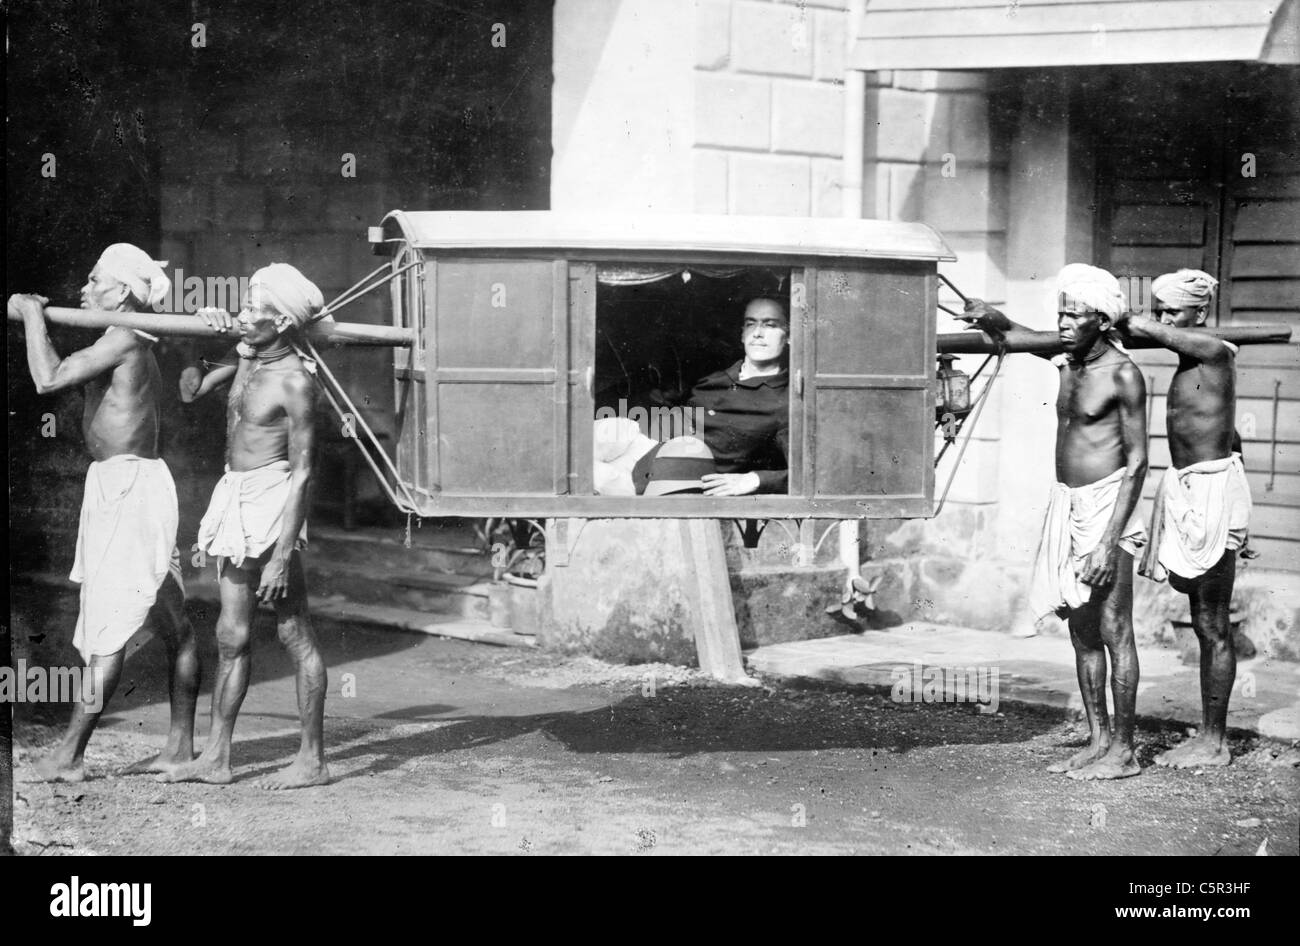 Quatre Indiens exerçant son palanquin, Inde Photo Stock